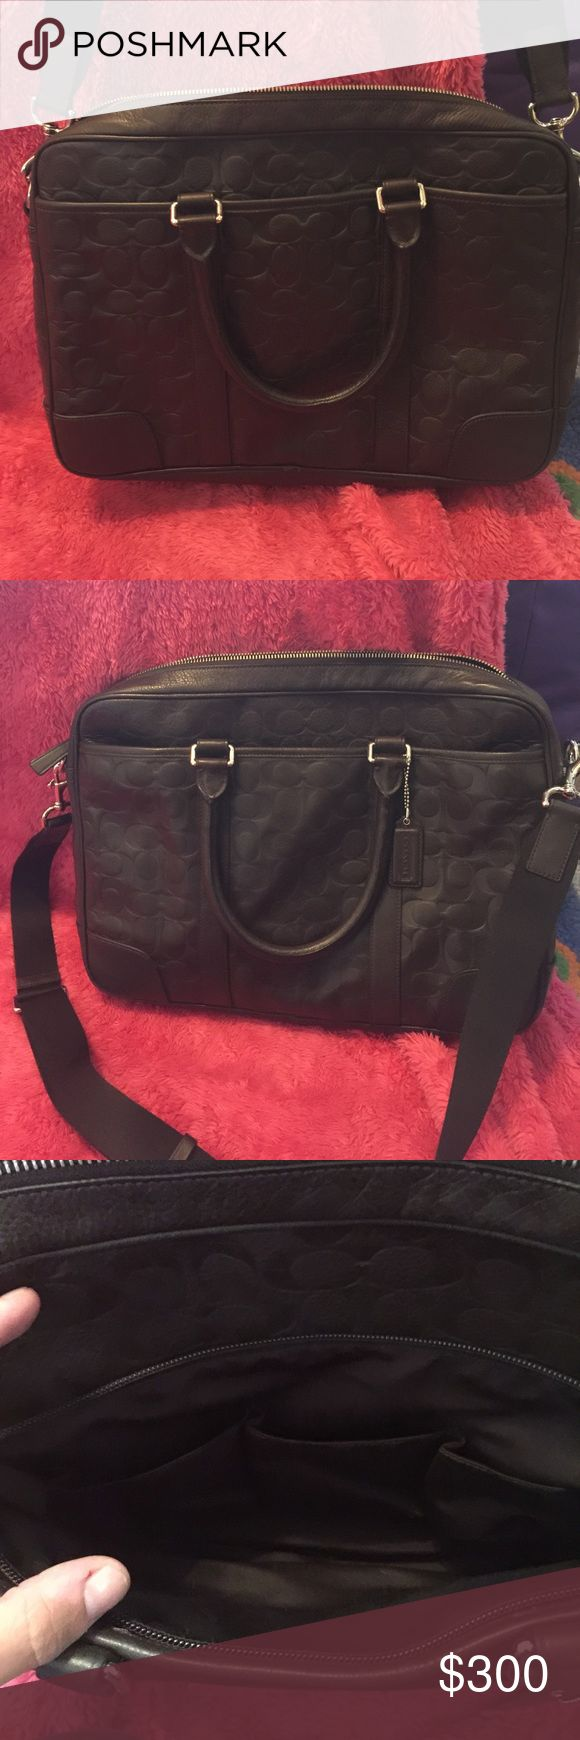 Beautiful Coach Briefcase Brown signature Coach leather briefcase. Like new in excellent condition. Only used twice. Coach Bags Briefcases